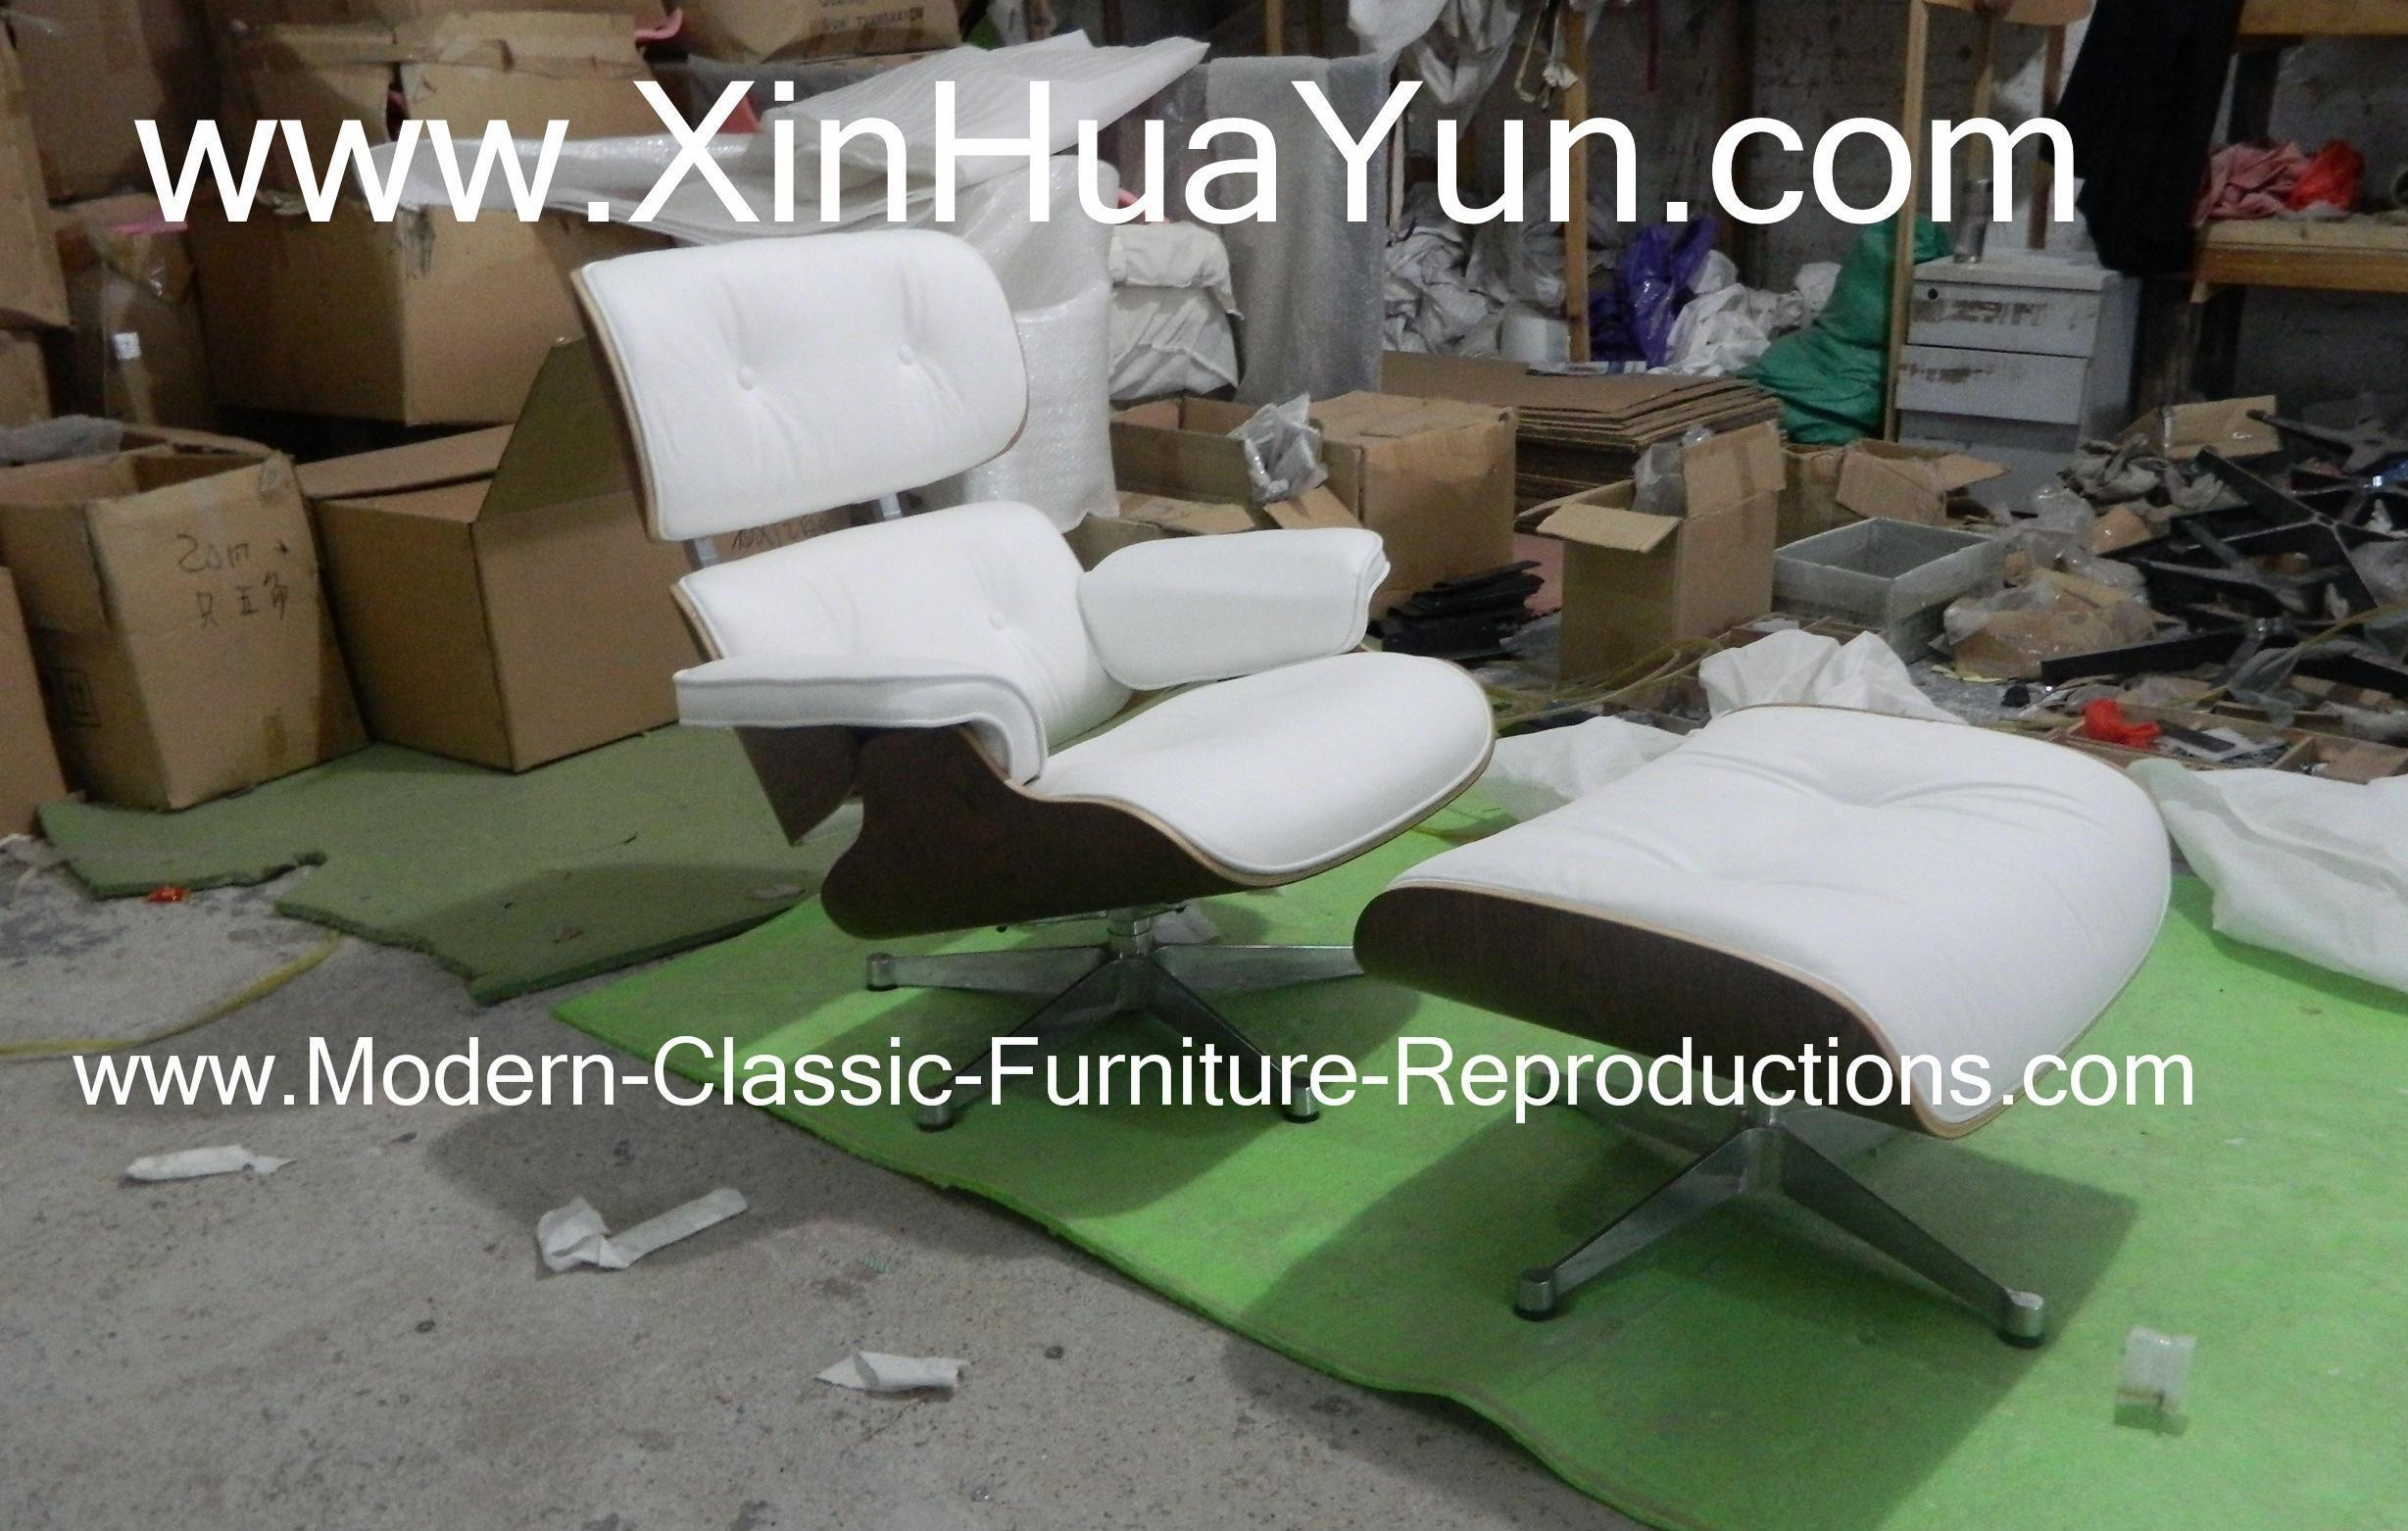 Modern Classic Furniture Reproductions josef hoffman kubus chair modern designer furniture reproductions from josef hoffman and other modern classic Main Image Xinhuayun Modern Classic Furniture Factory Is Located In Shenzhen